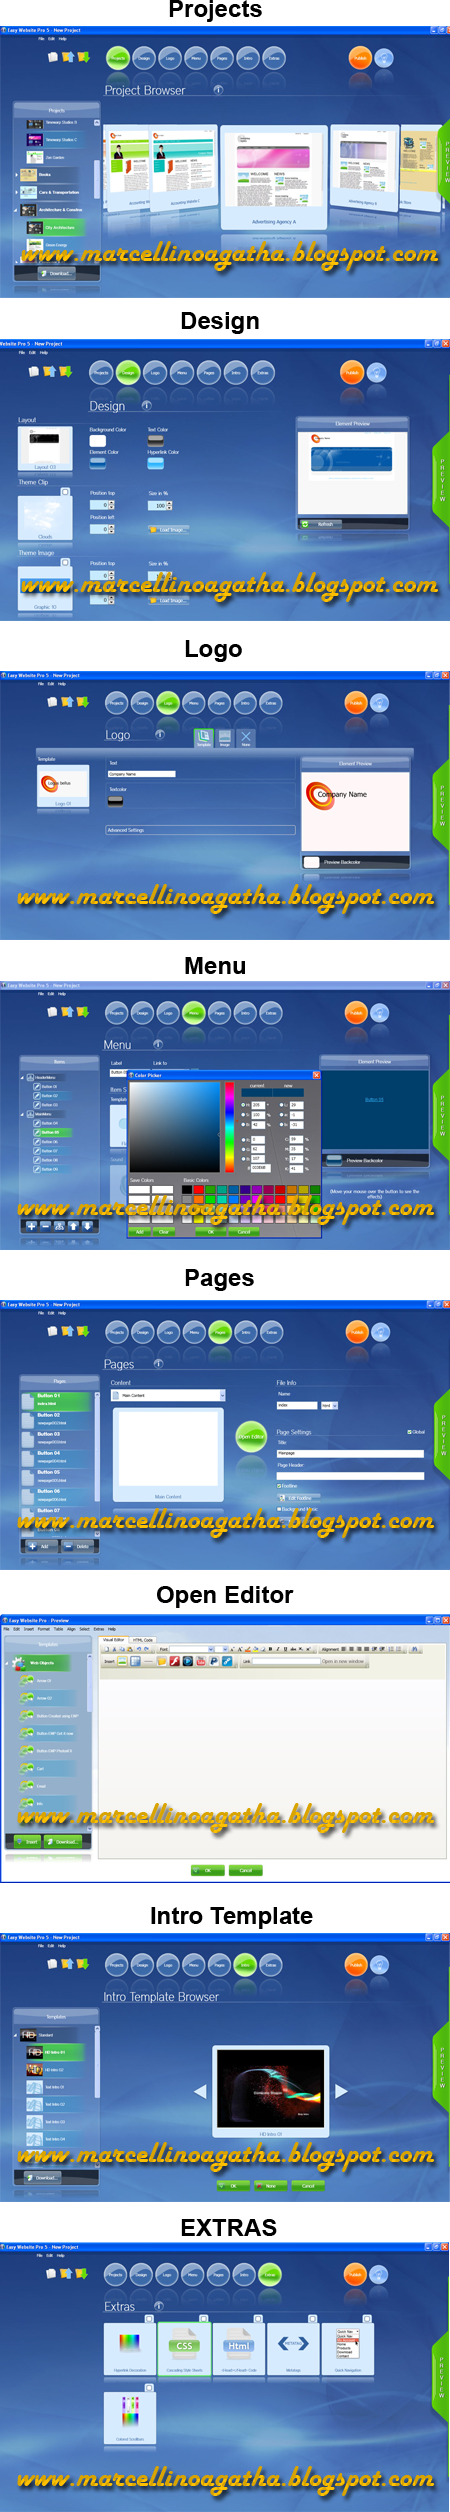 Membuat Template Website dengan PhotonFX Easy Website Pro Unlimited v5.0.8